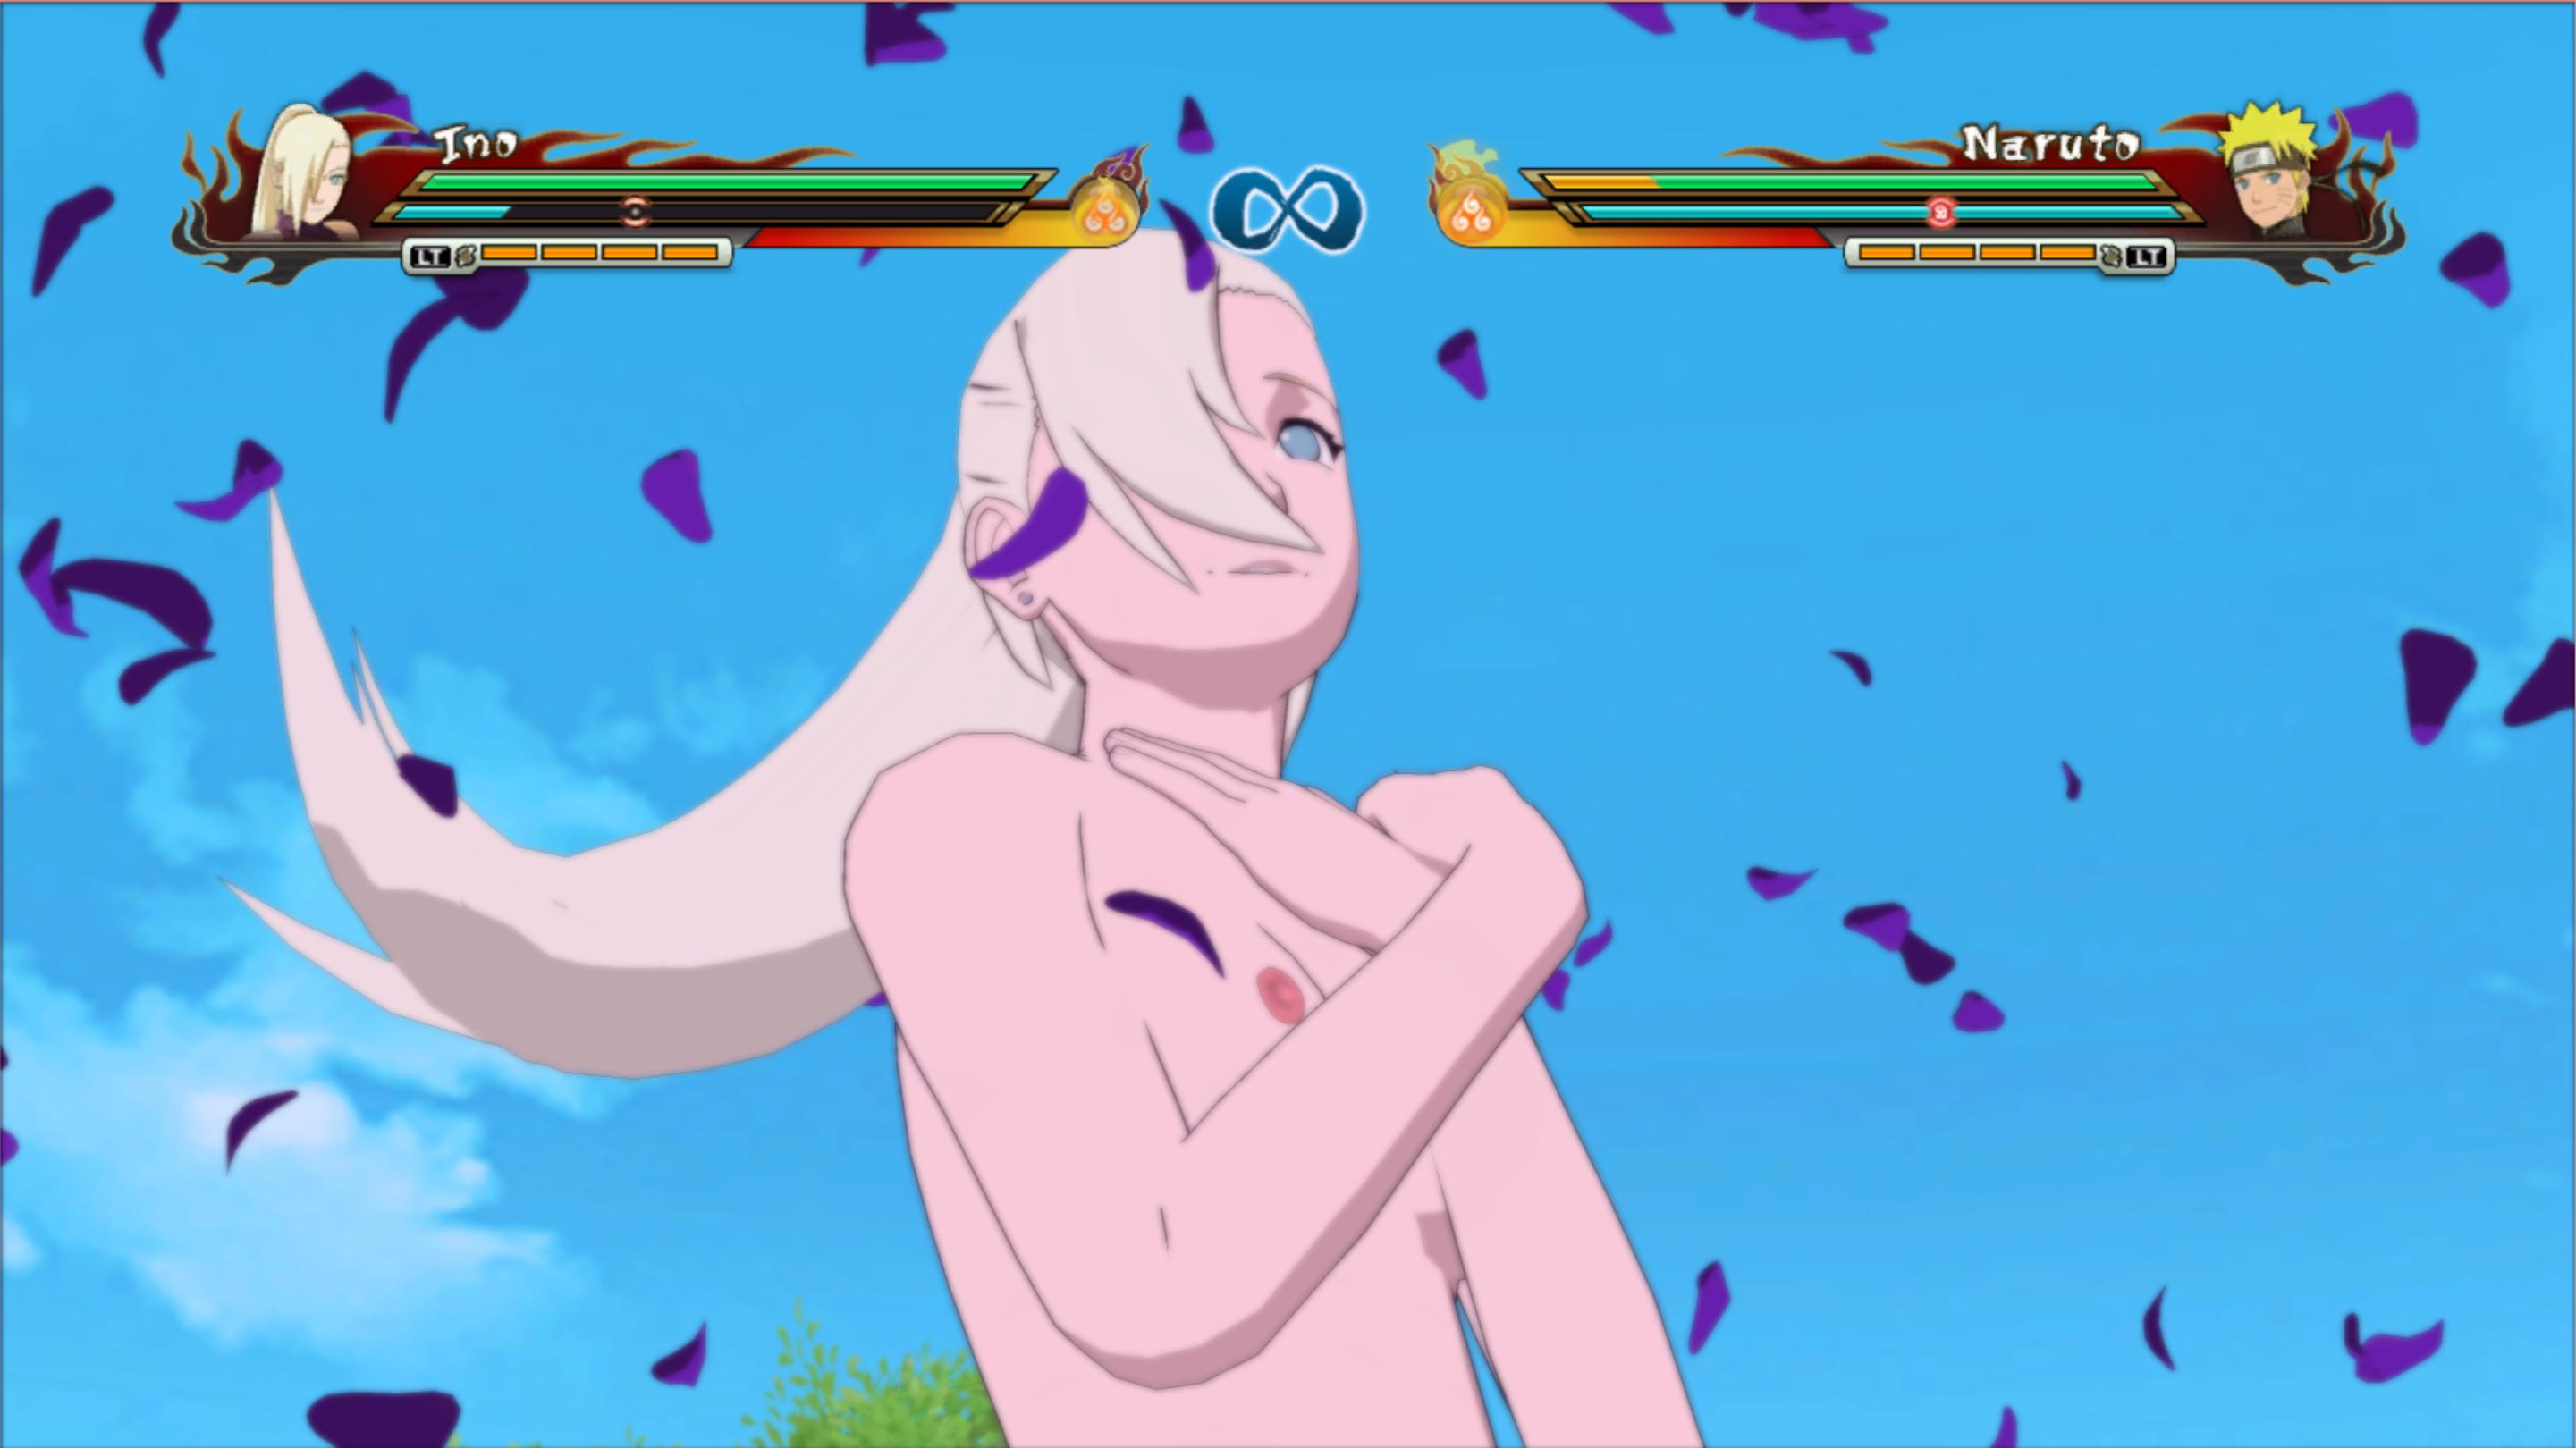 Naruto nude mod fucked streaming